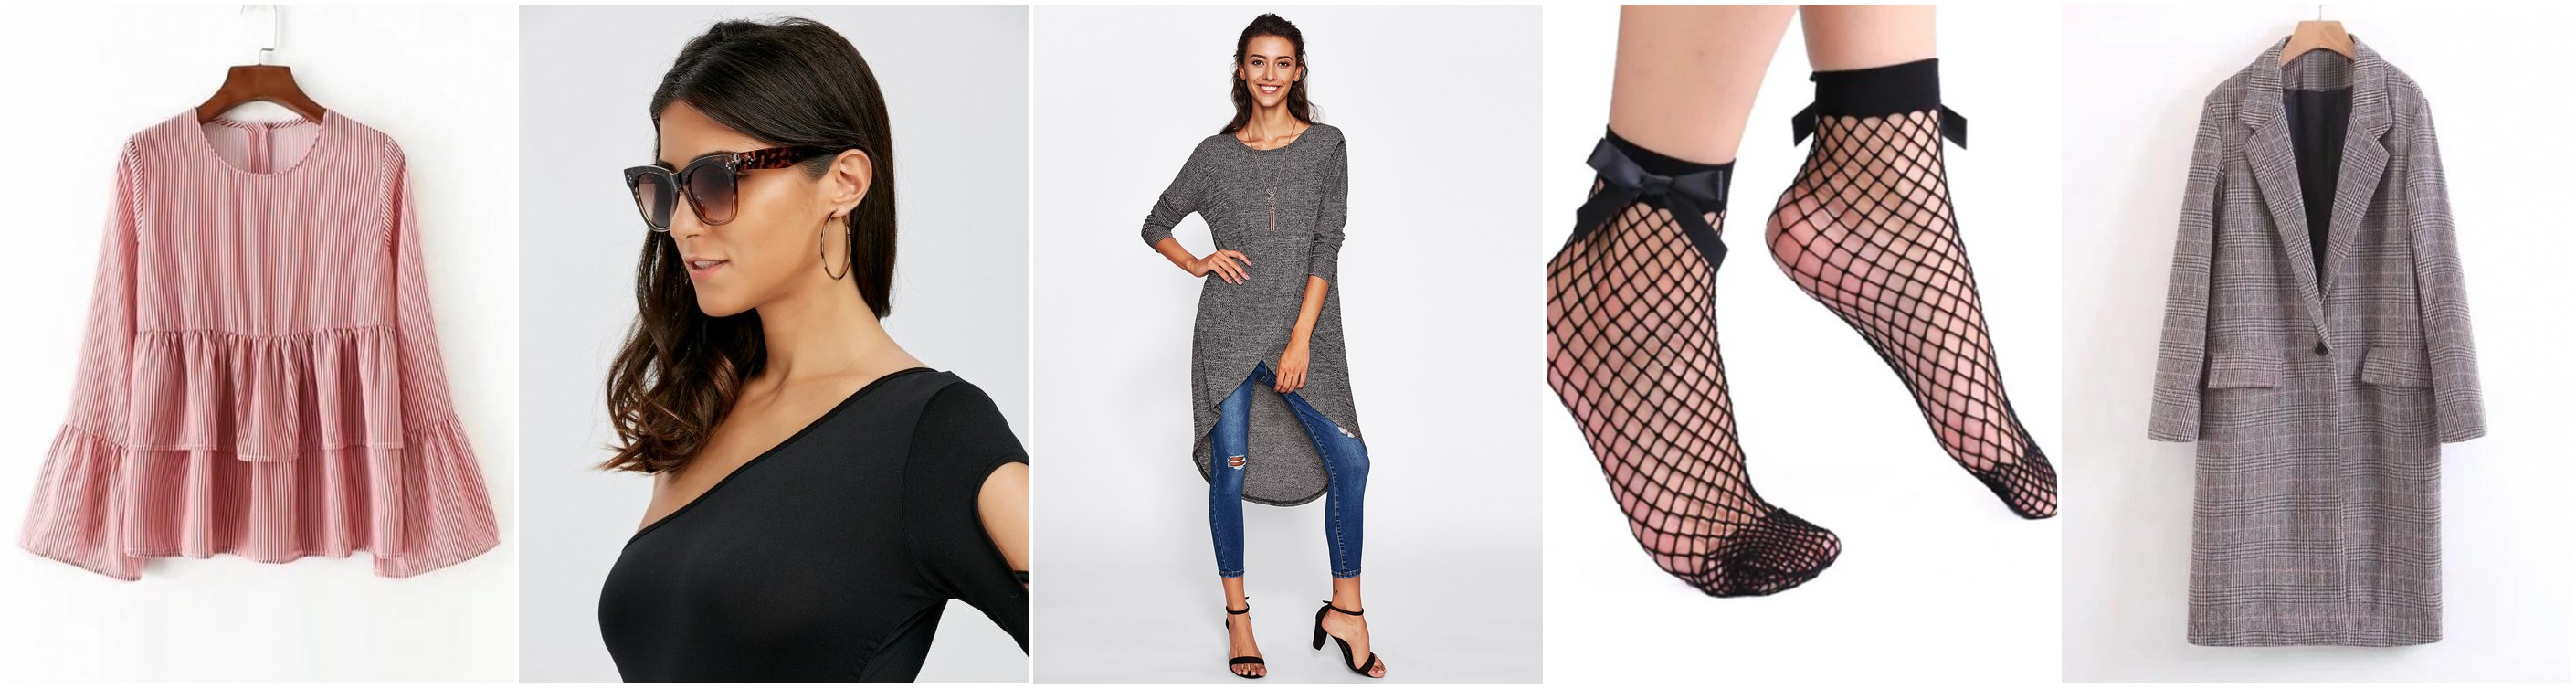 2017-monthlyreport-11